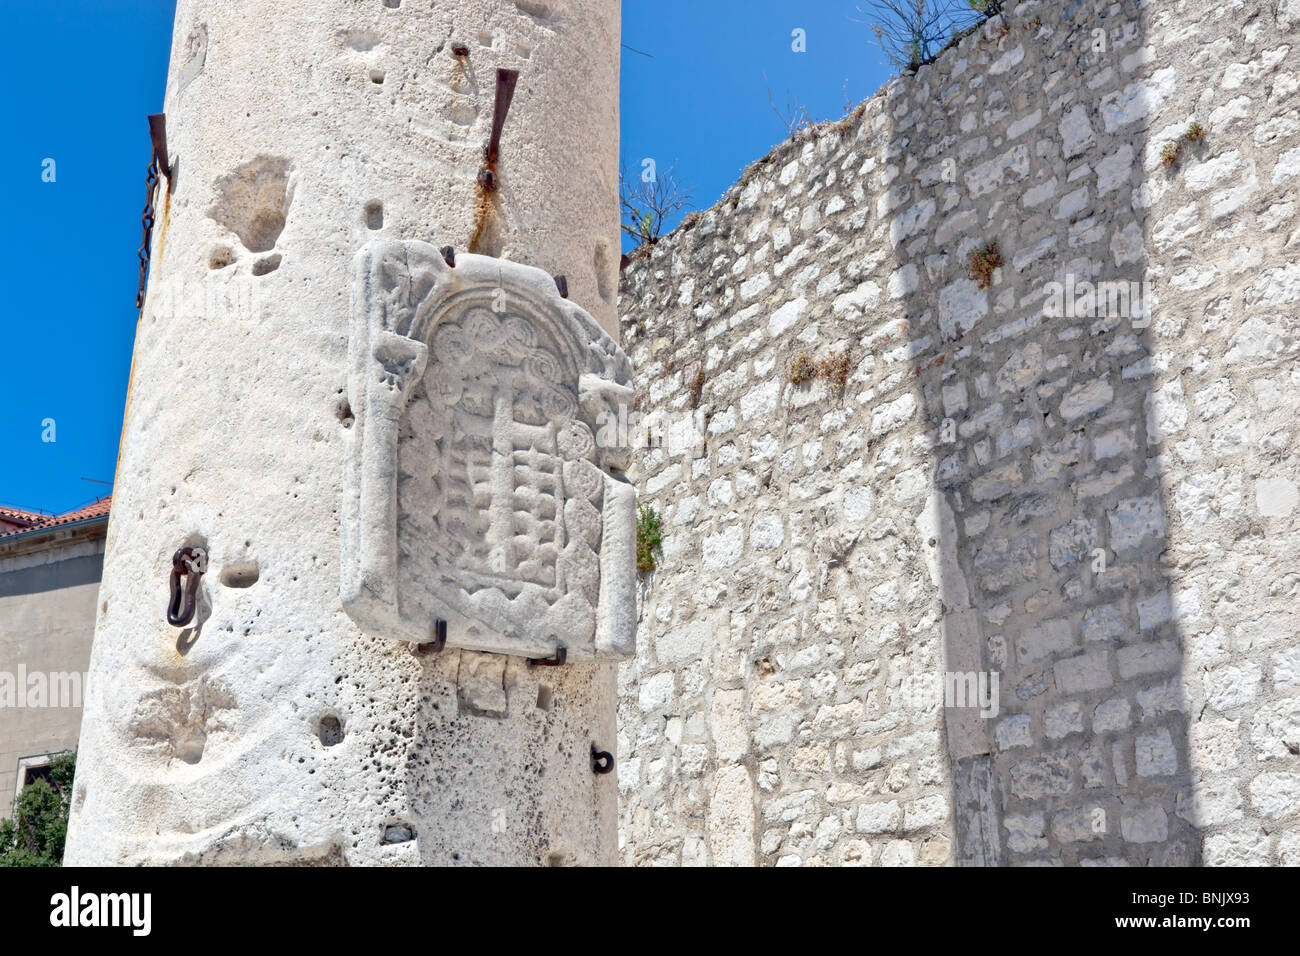 Column of shame in Zadar from Roman time period - Stock Image